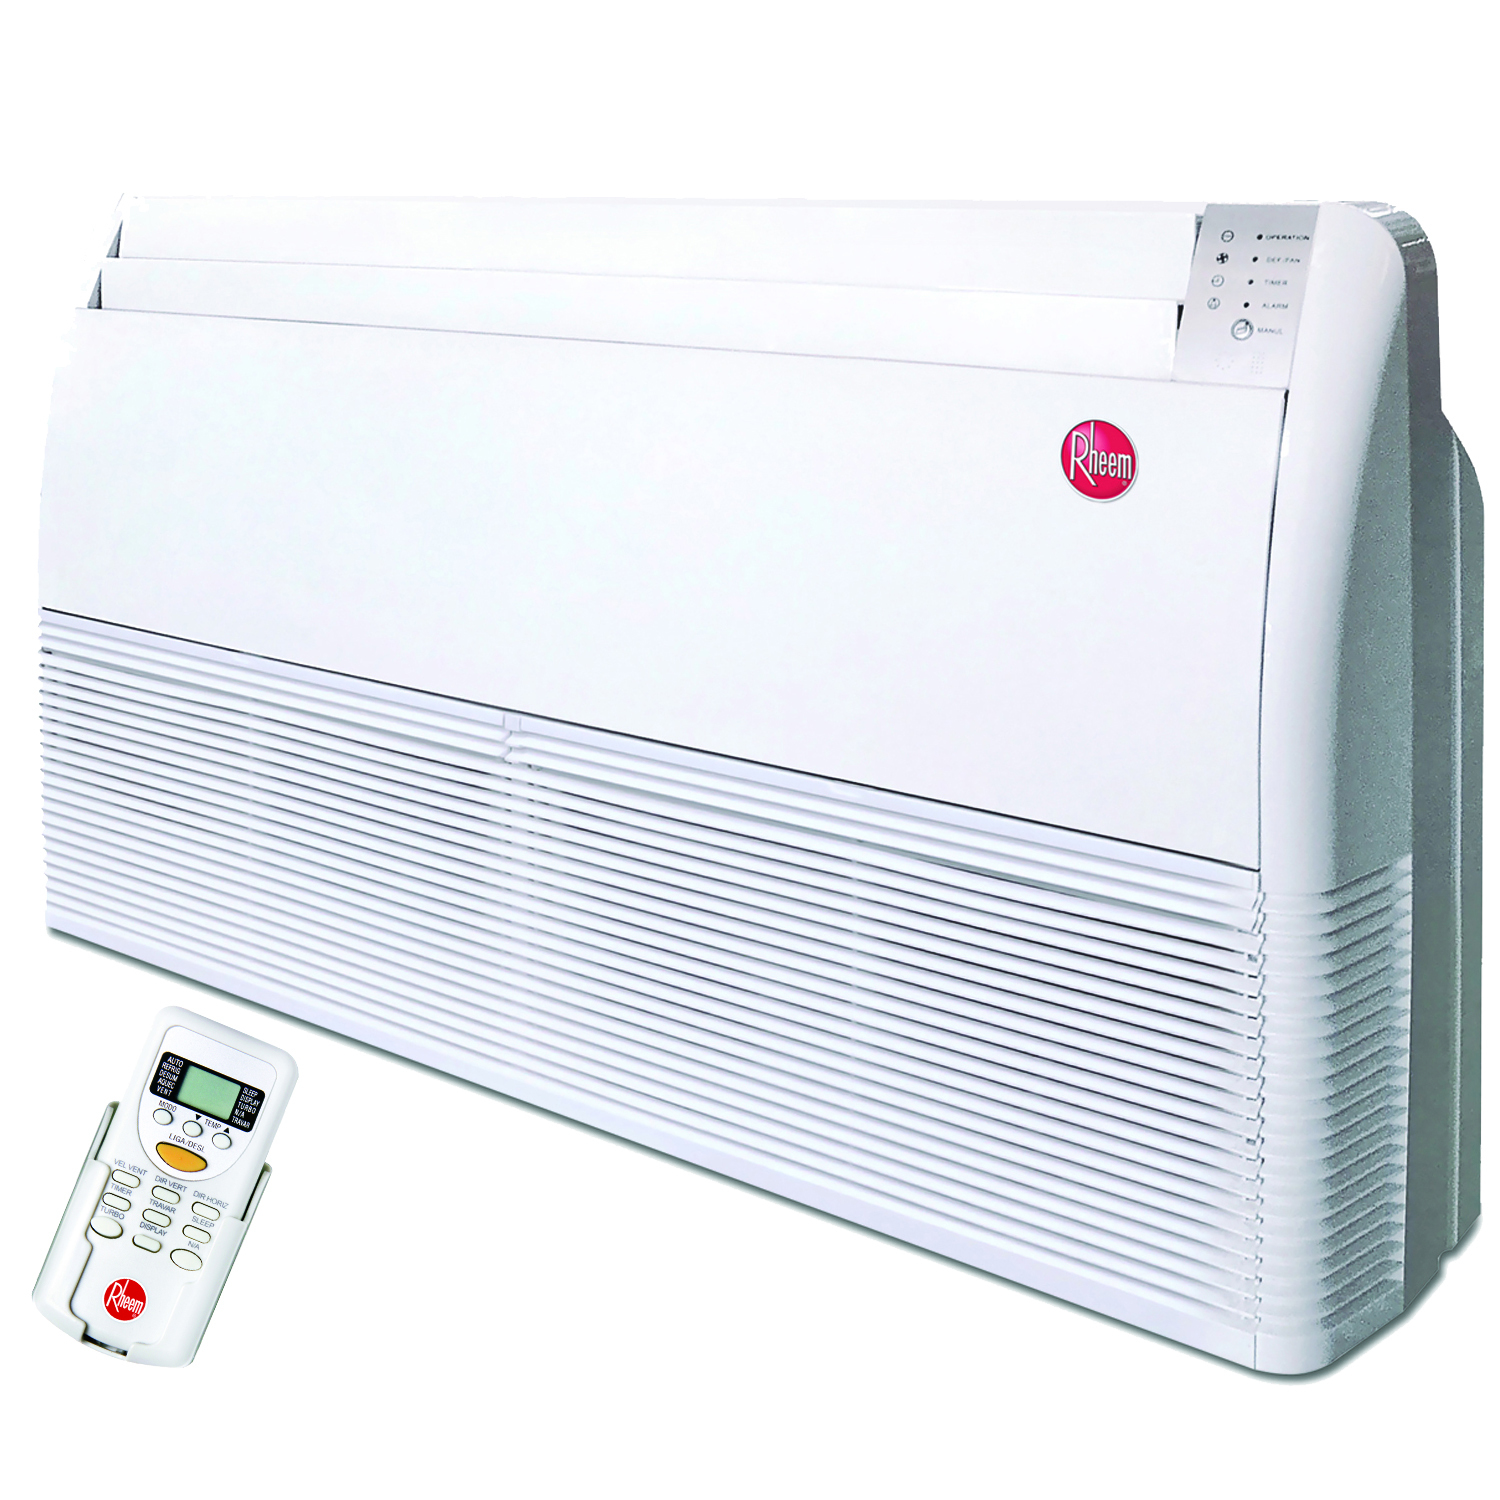 mini split system experts. Ductless mini split air conditioning  #BE0D31